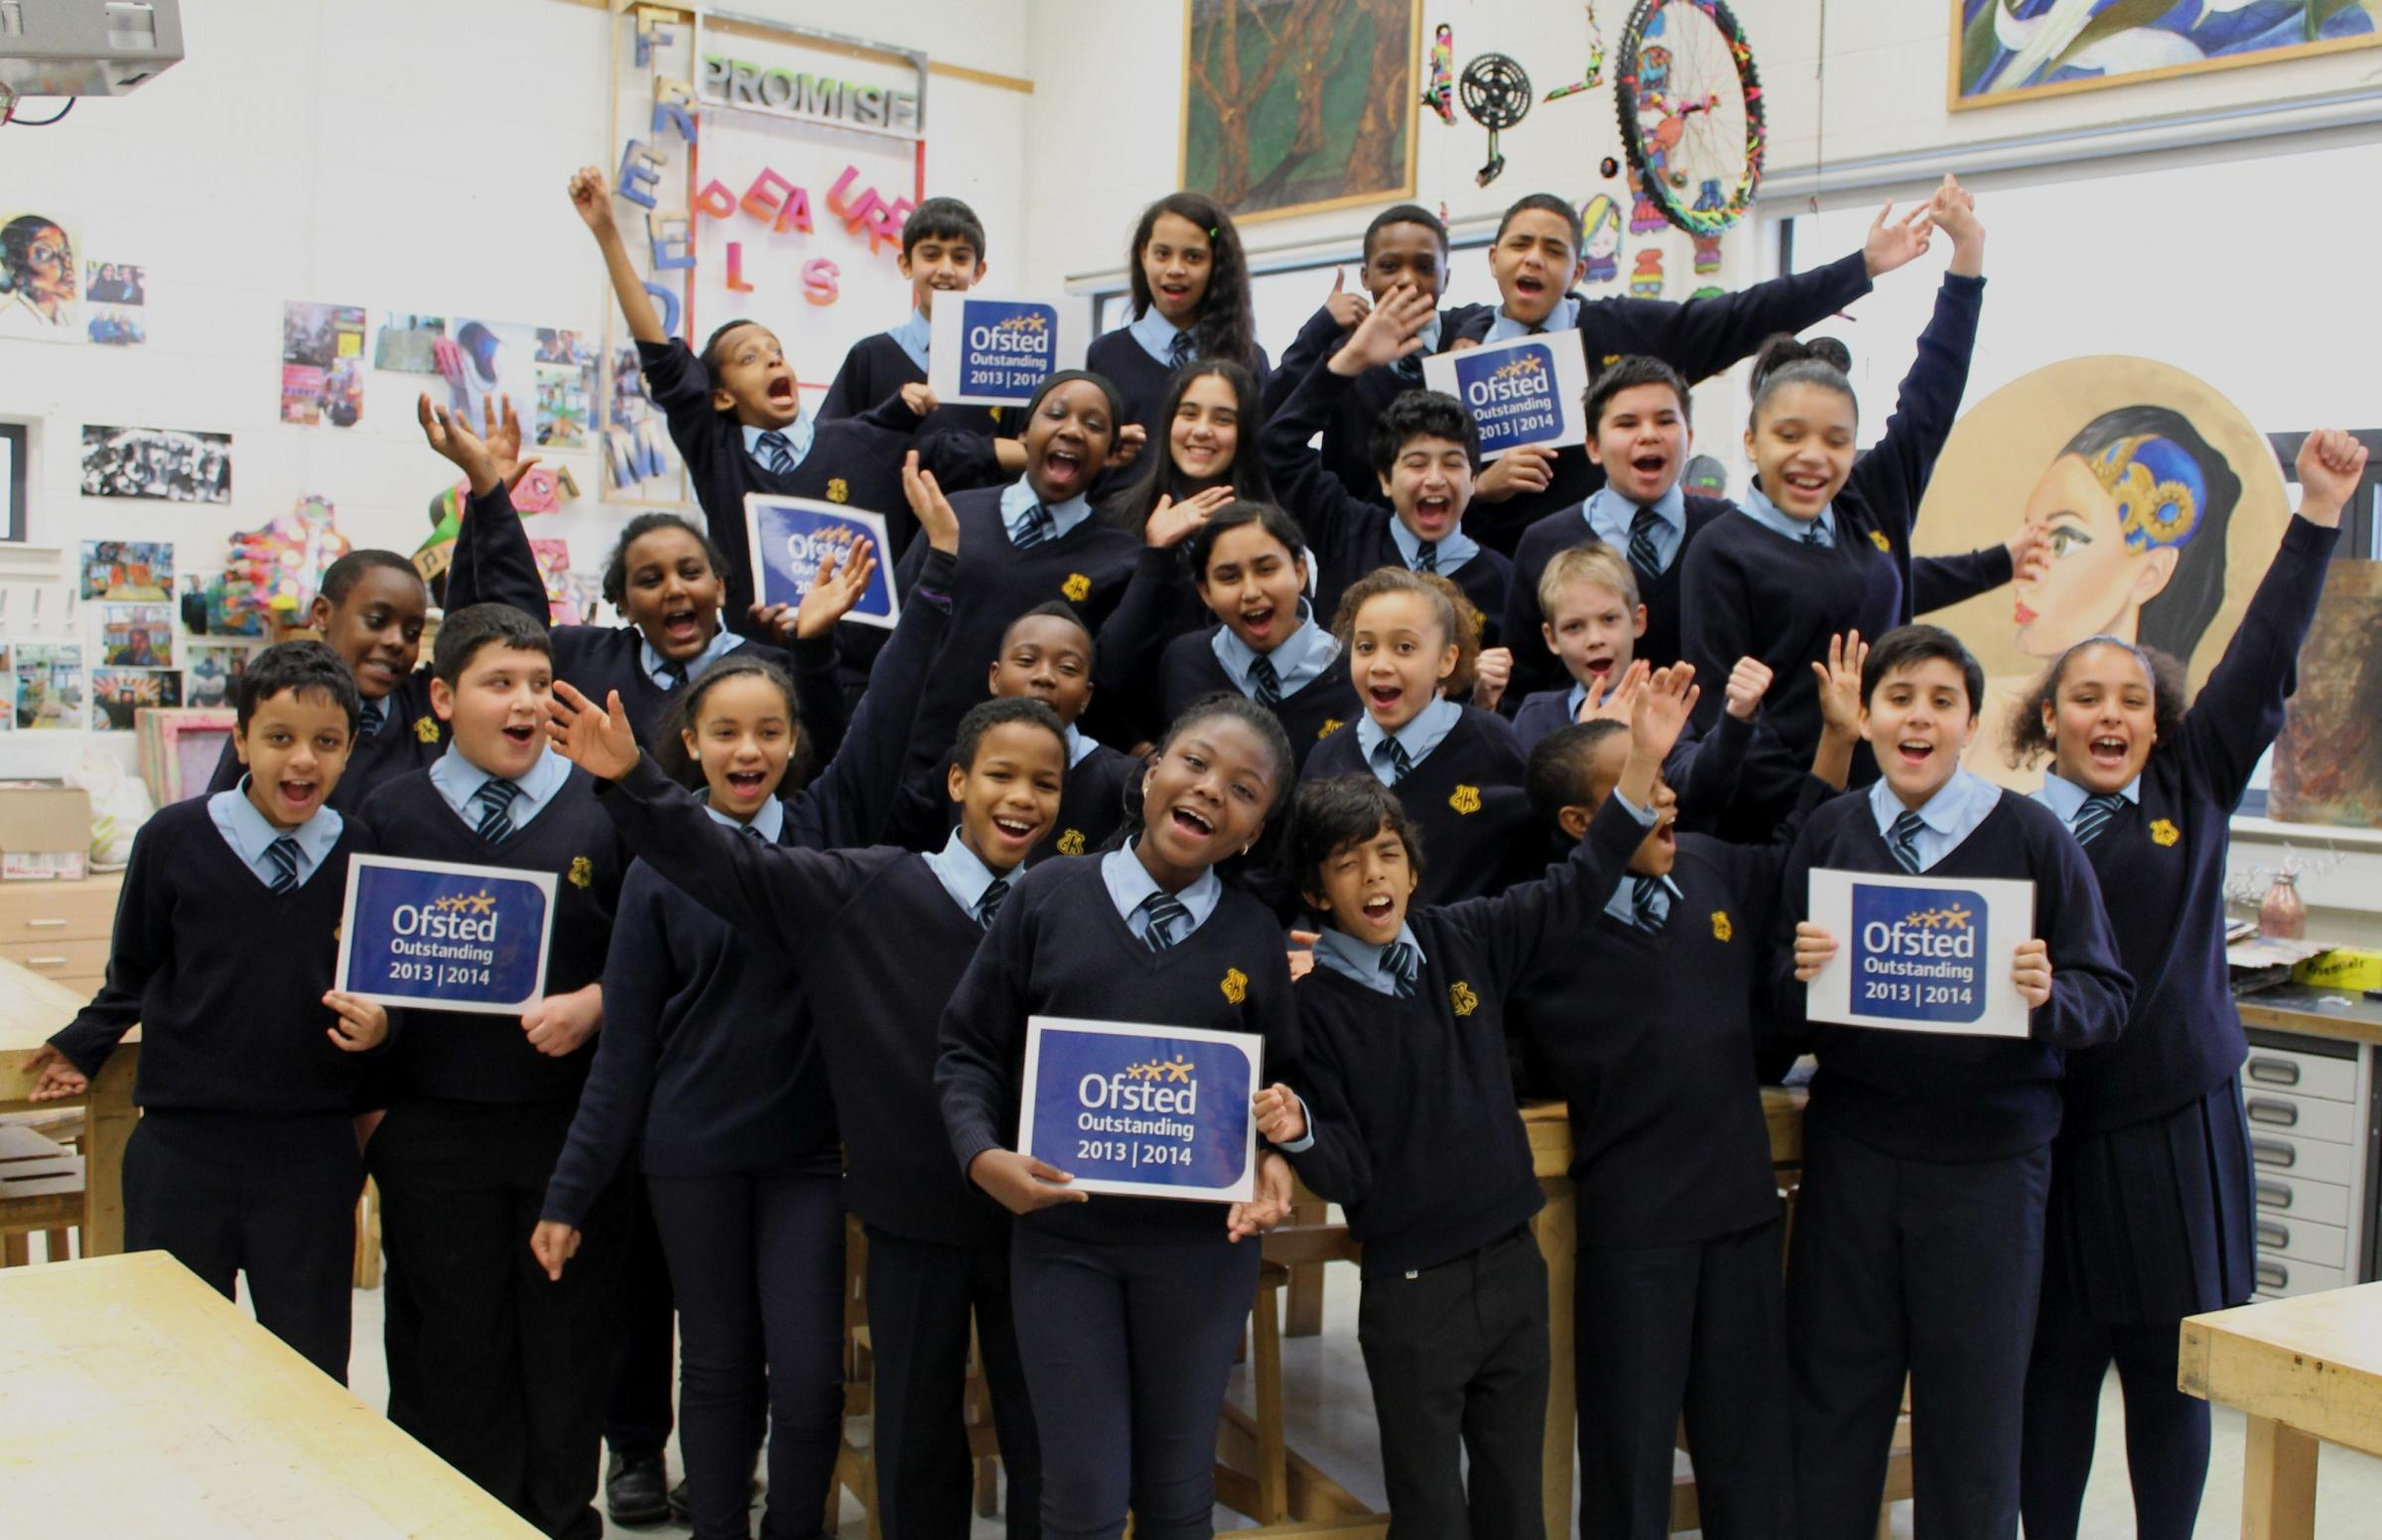 Students at Gladesmore Community School celebrated the outstanding Ofsted inspection